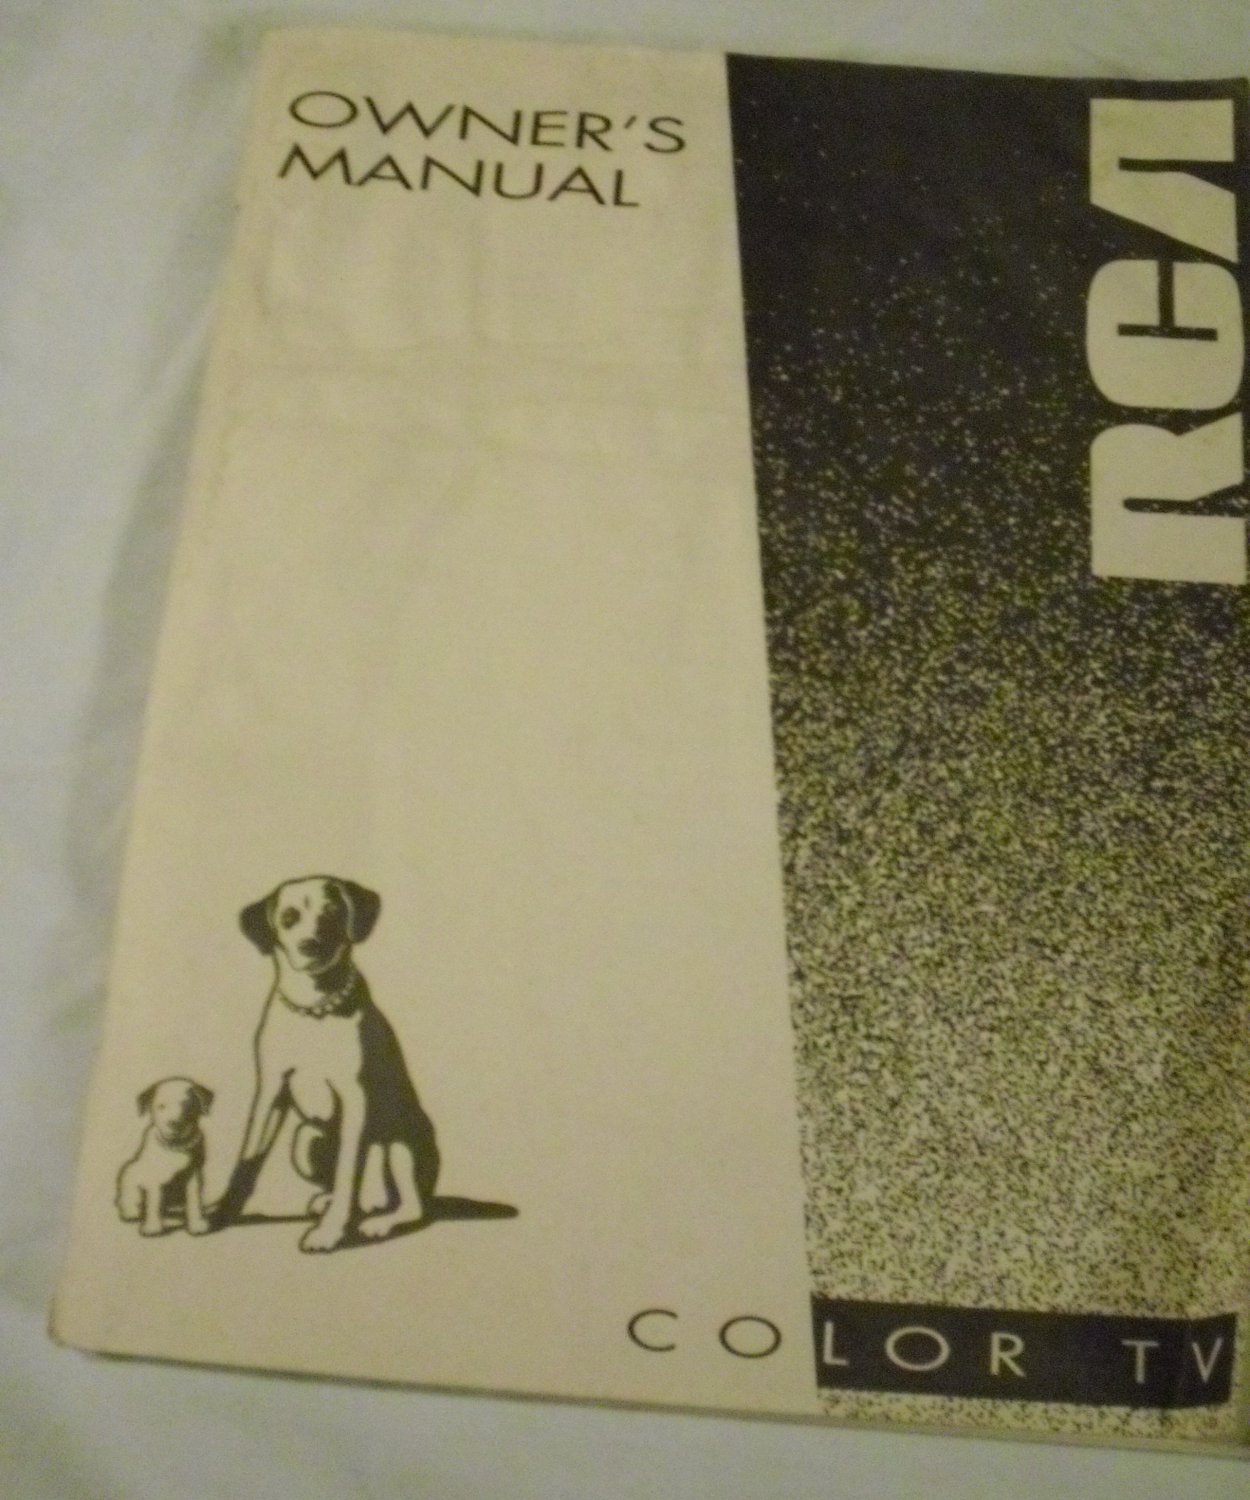 Owner's Guide 1994 RCA Color TV Manual Thomson Consumer Electronics, Inc.